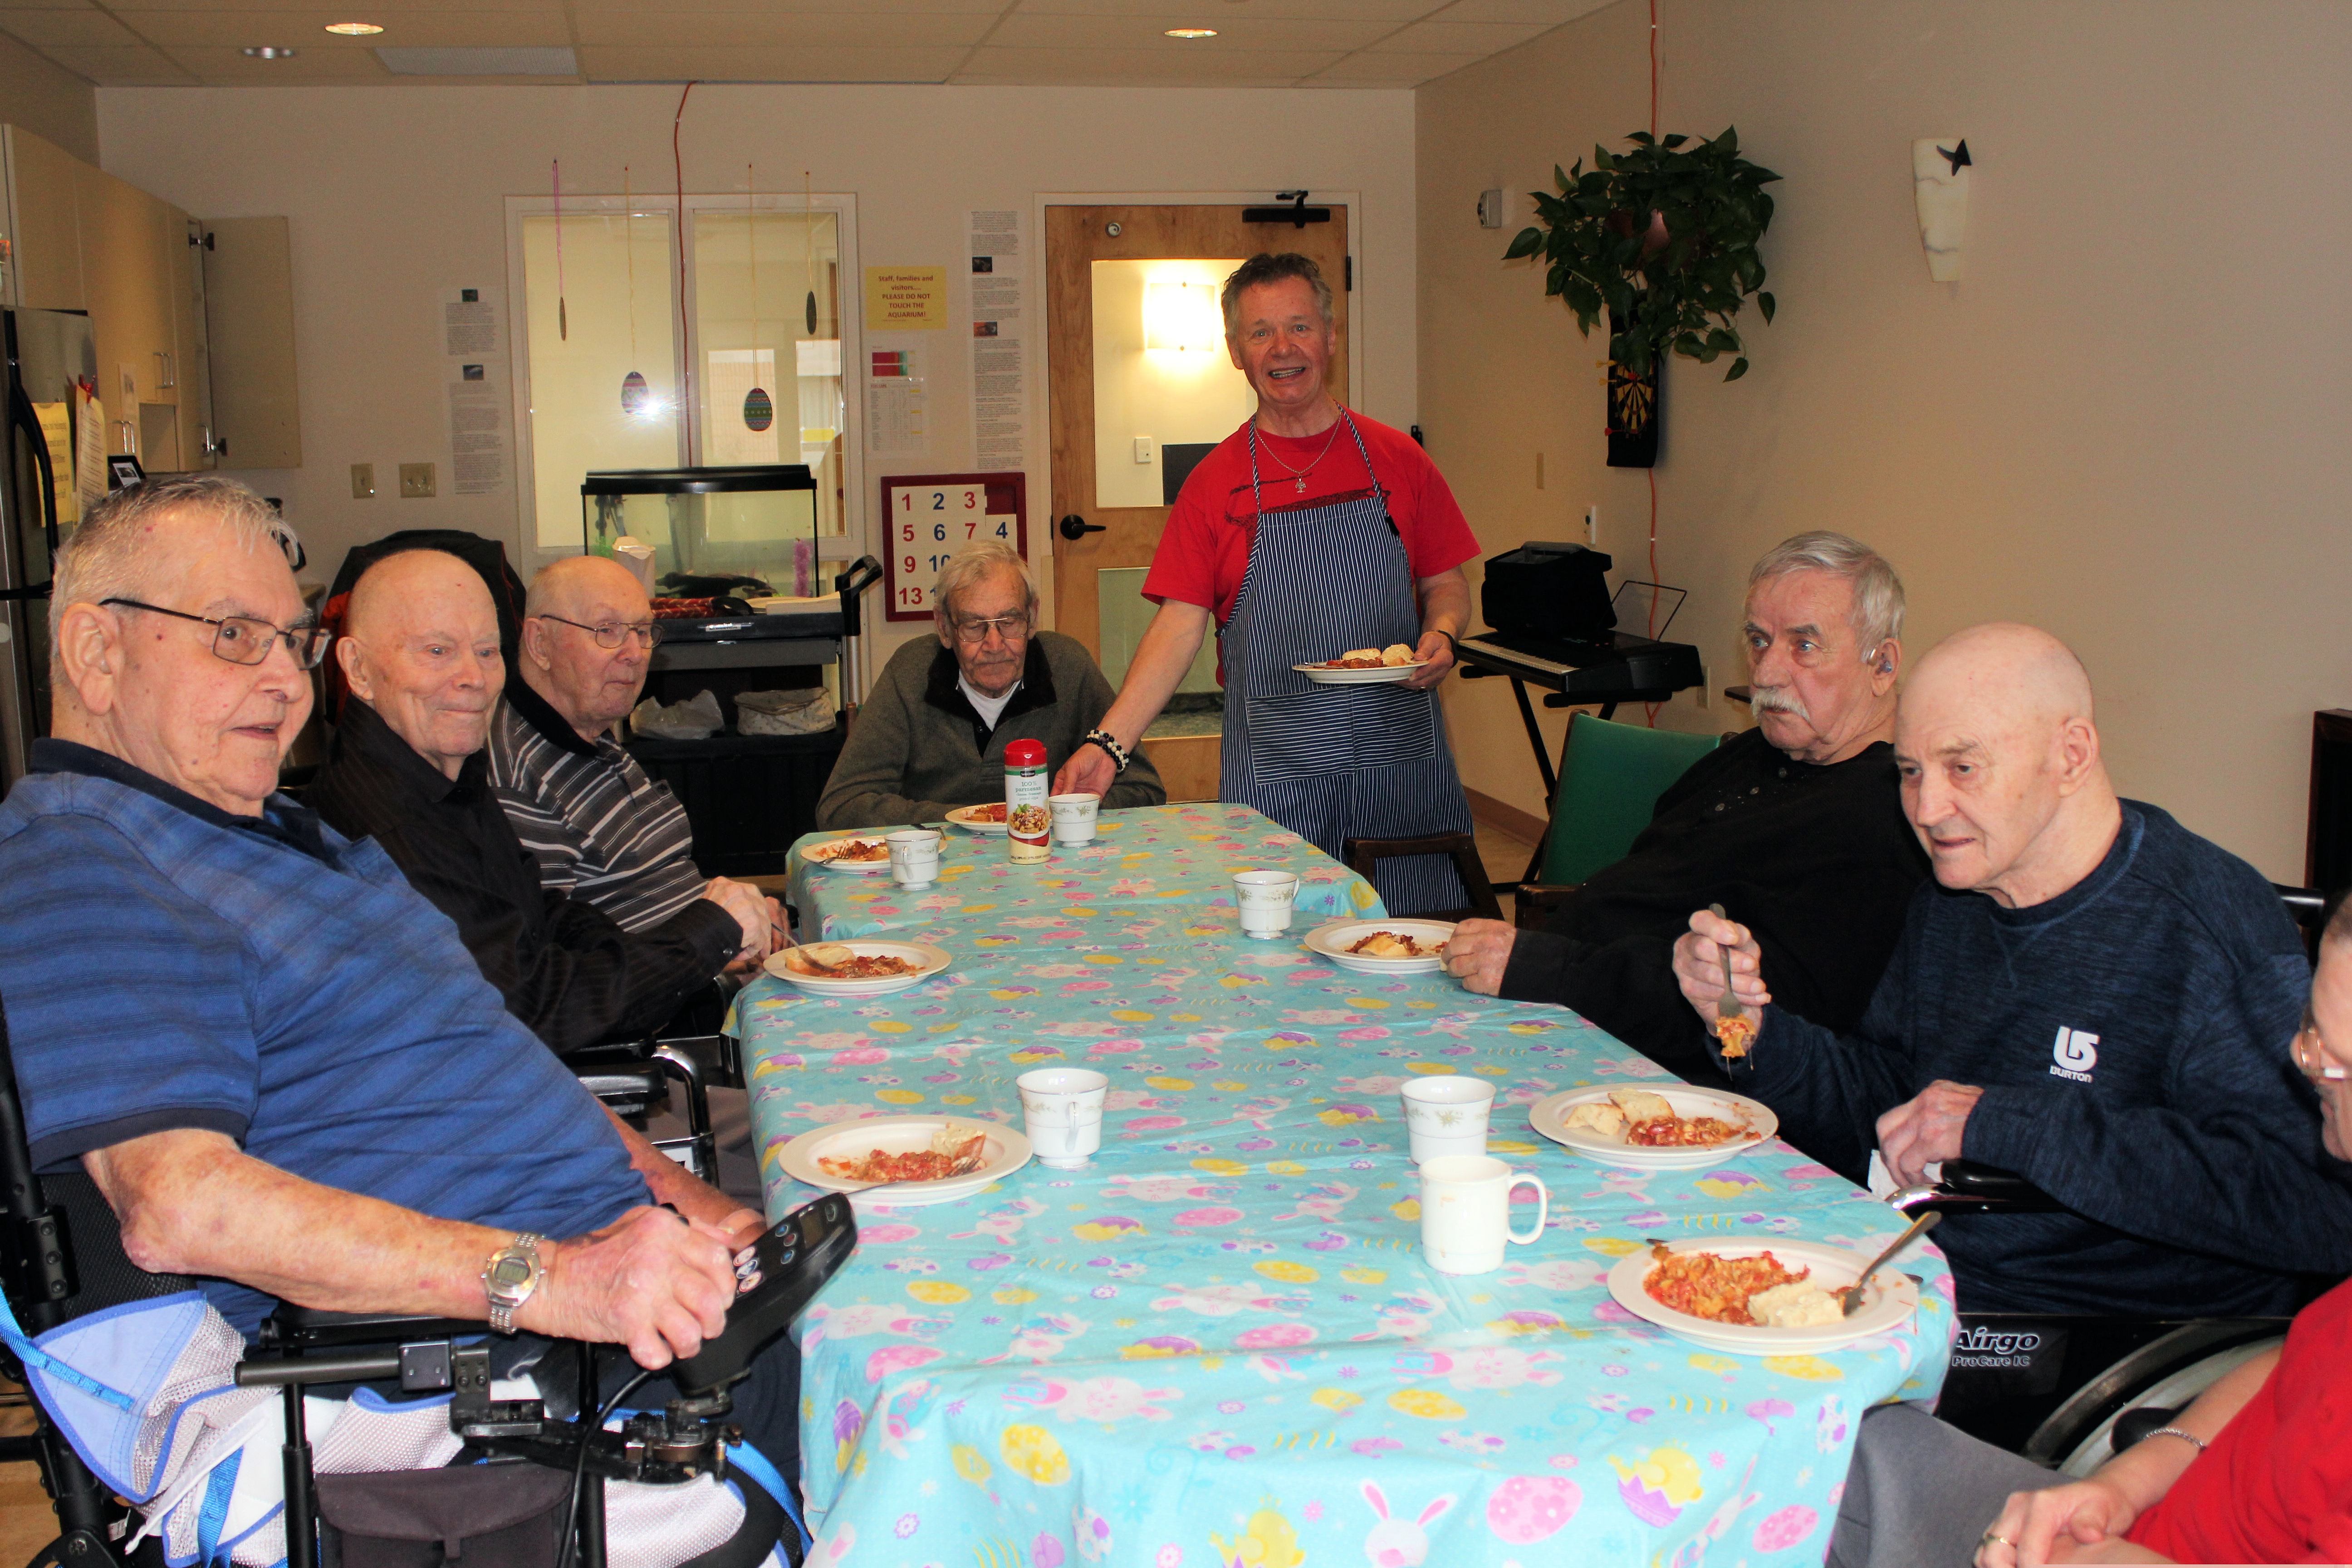 A group of male residents sit around a table while Ray serves them lunch and coffee